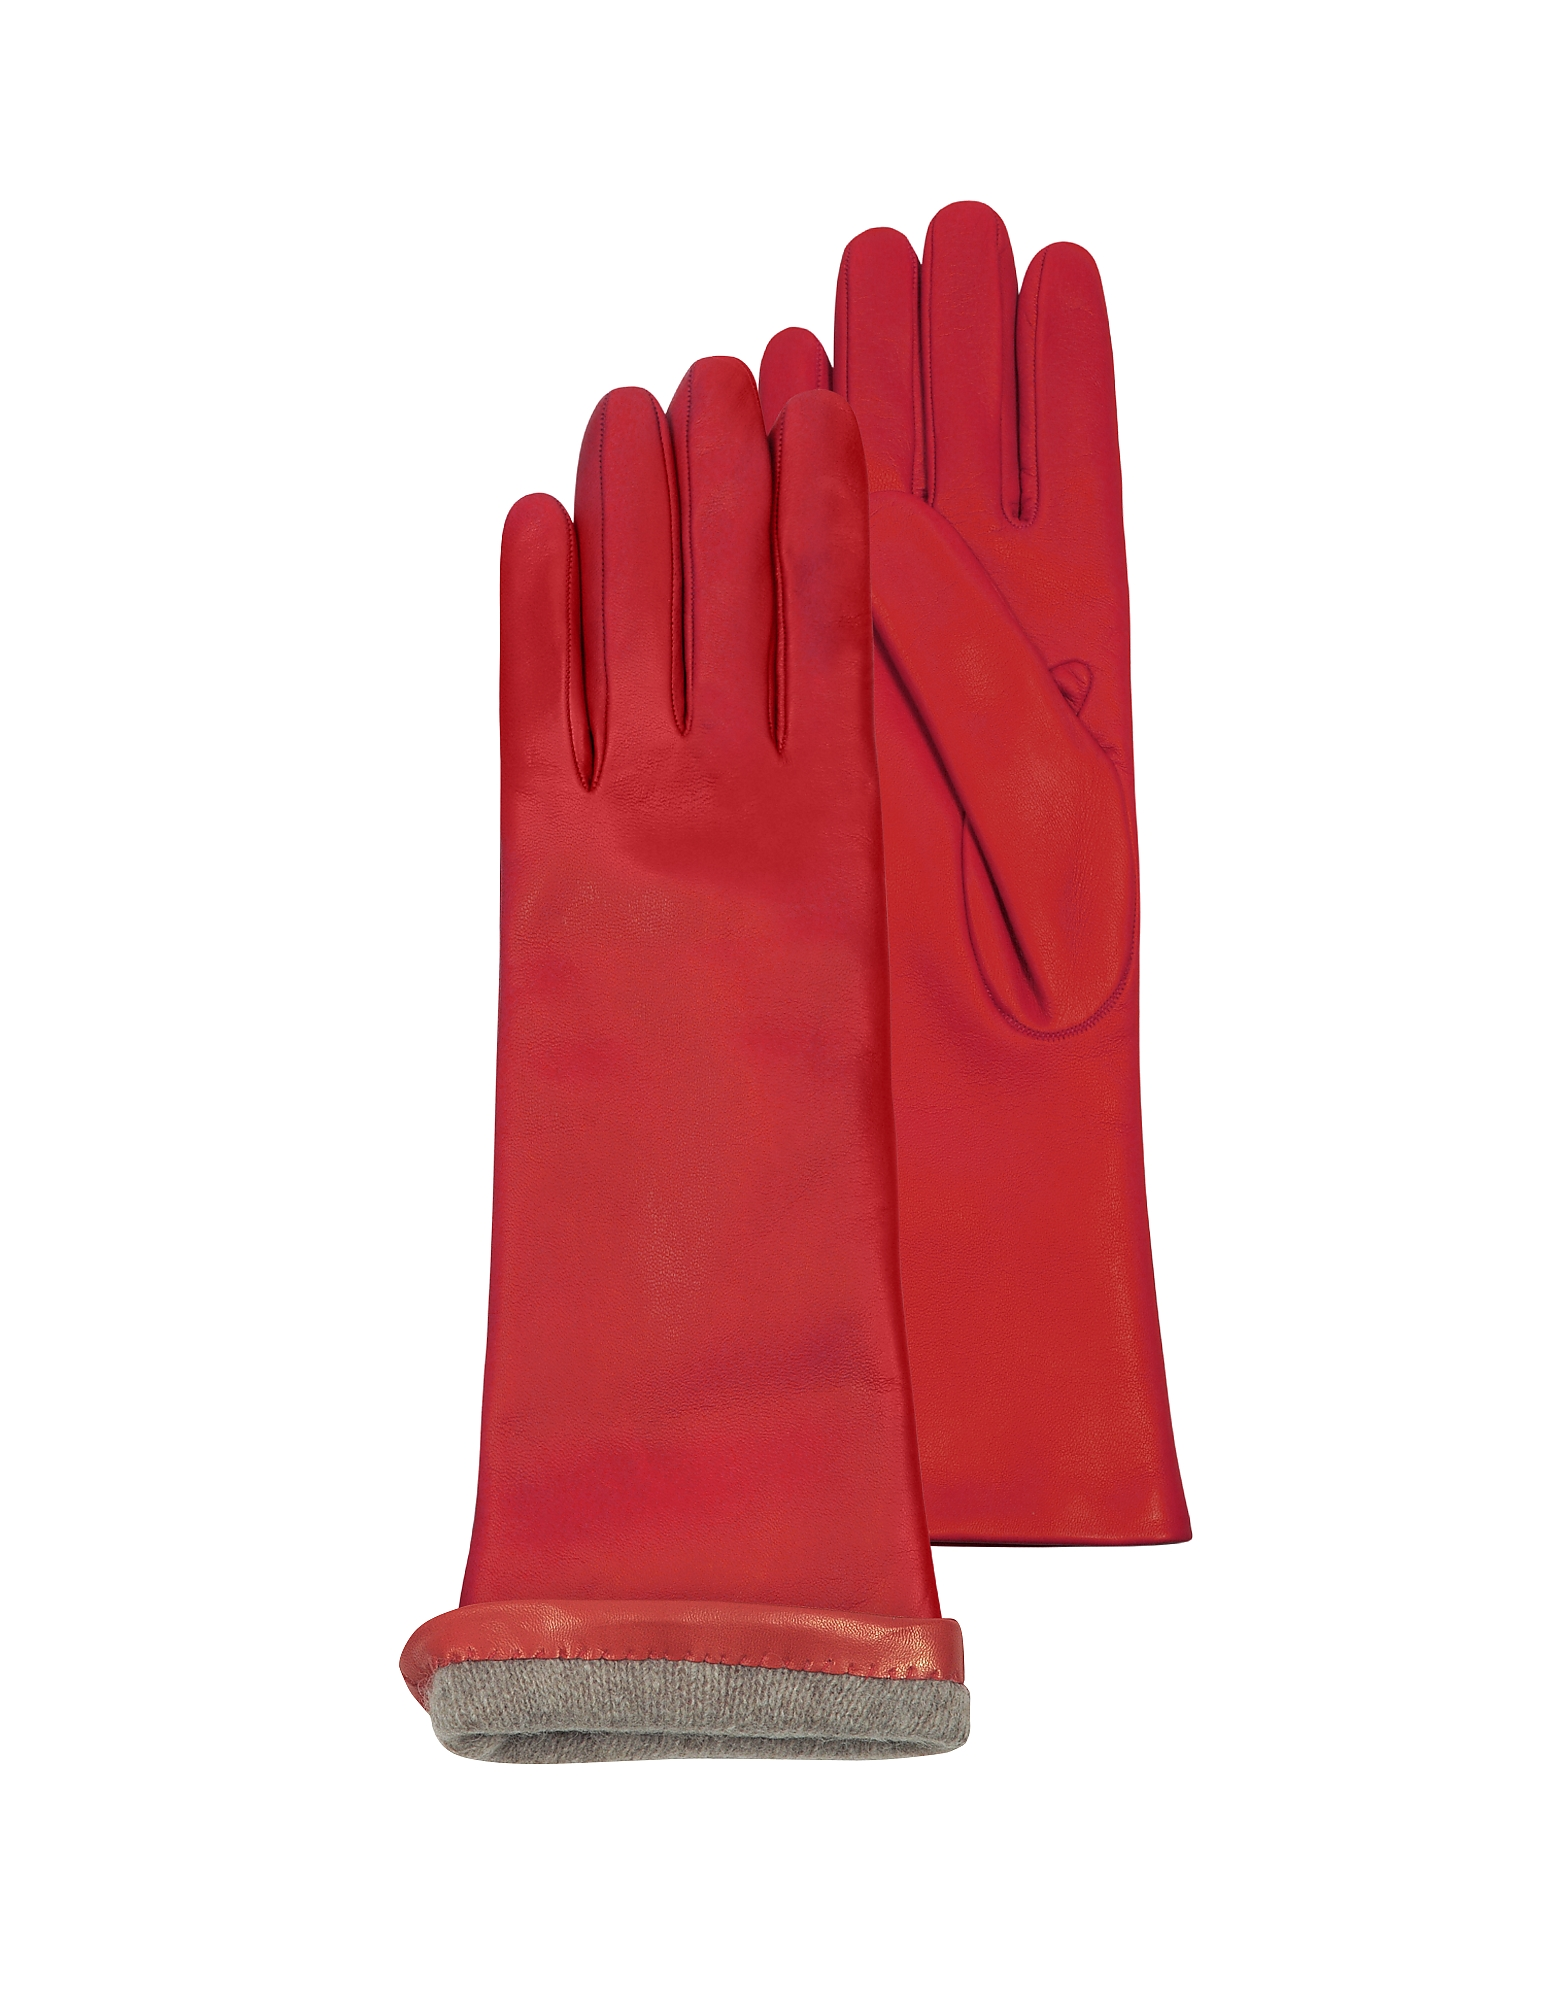 Red Leather Women's Long Gloves w/Cashmere Lining от Forzieri.com INT